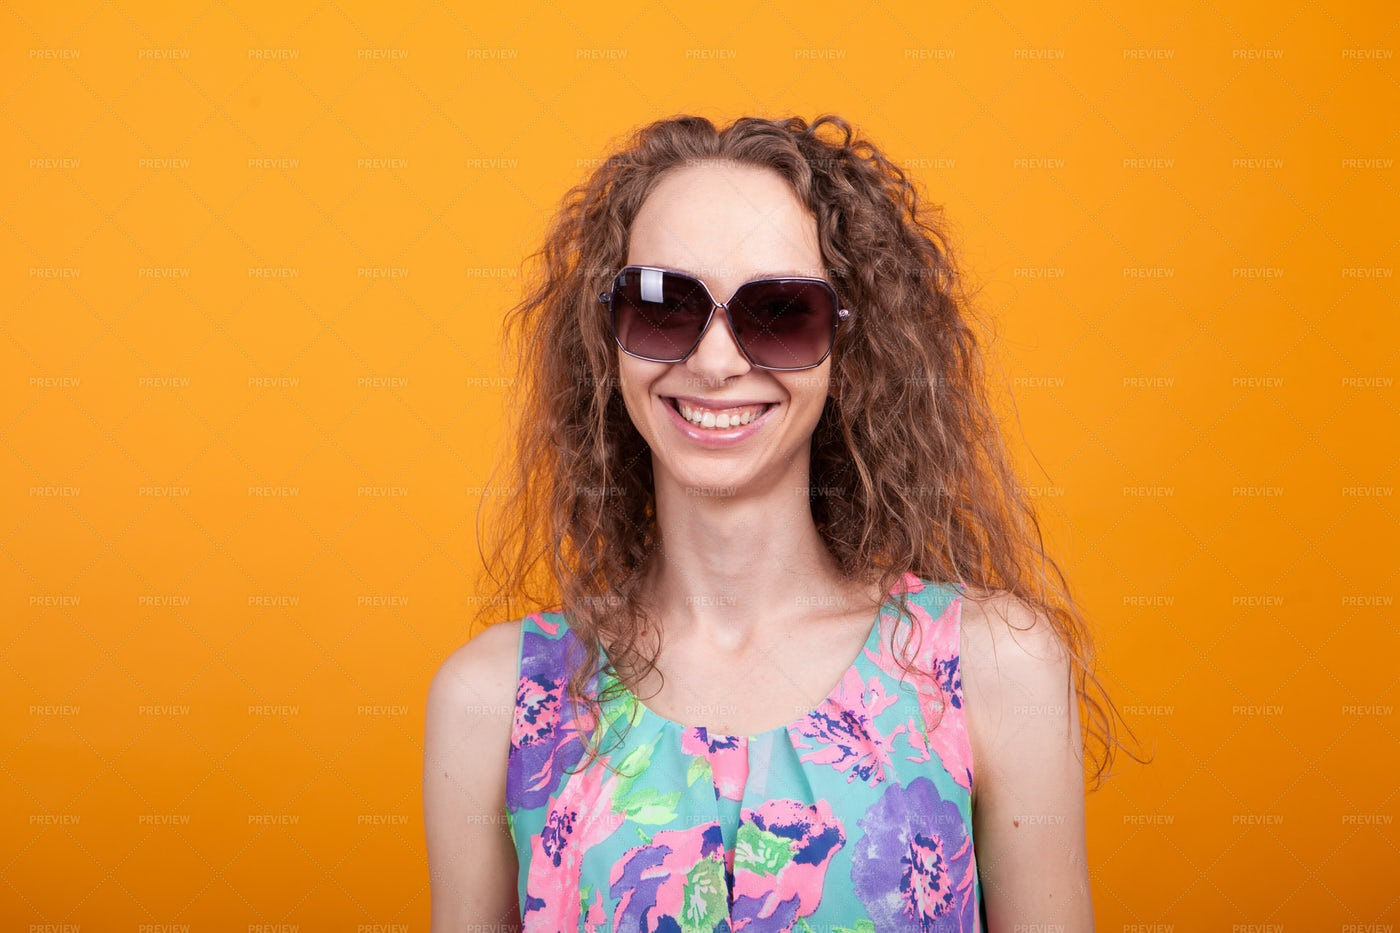 Woman In Sunglasses Smiling: Stock Photos